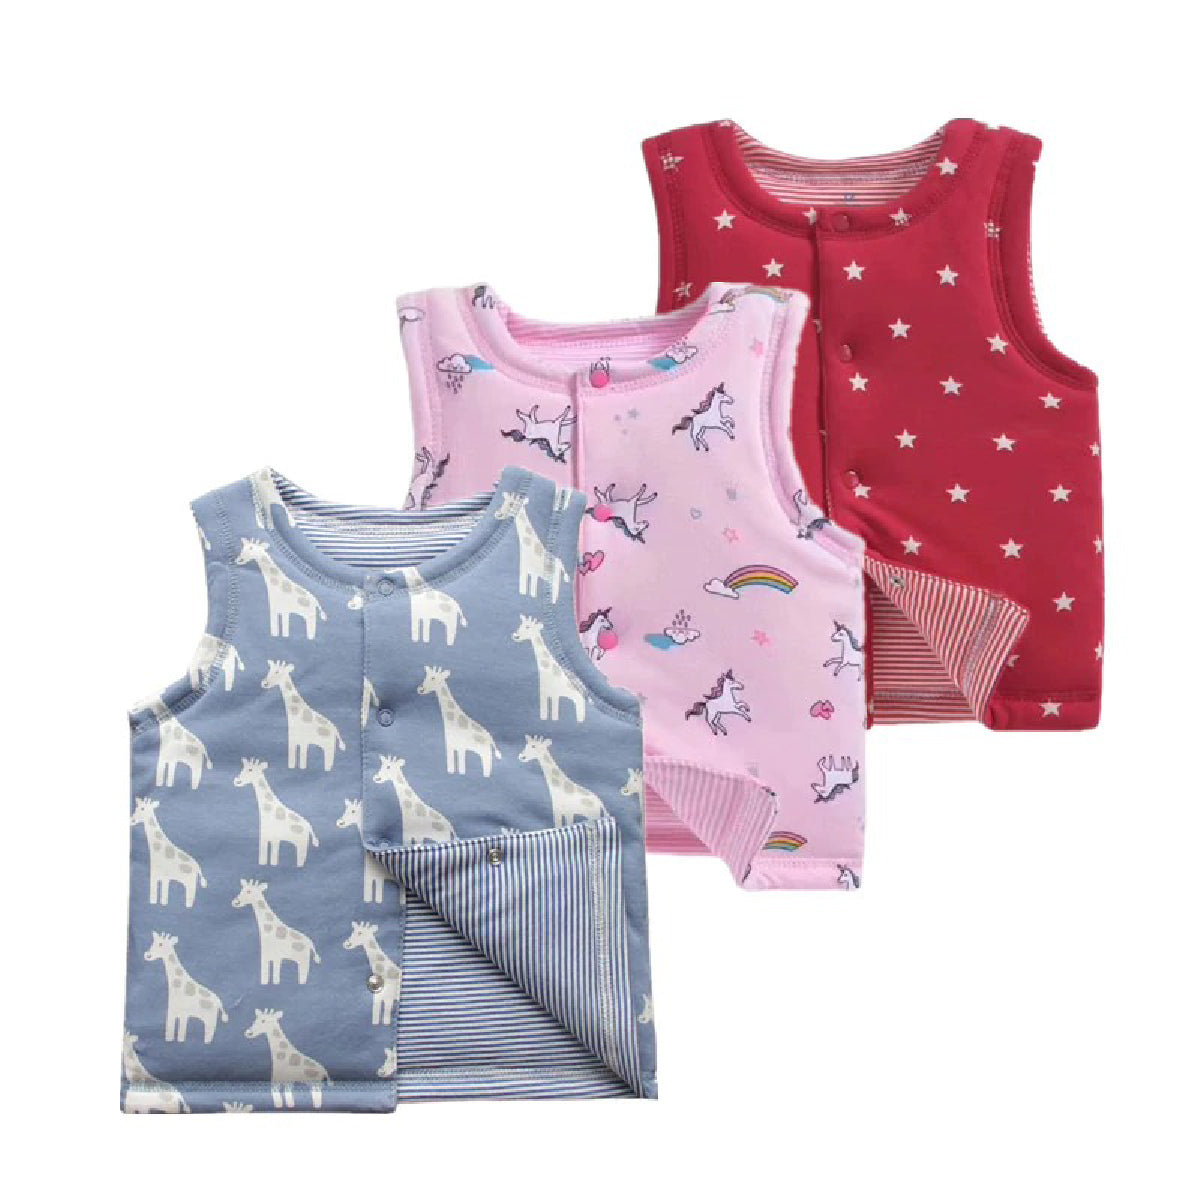 Baby Zone New Born Winter Cotton Vest ™